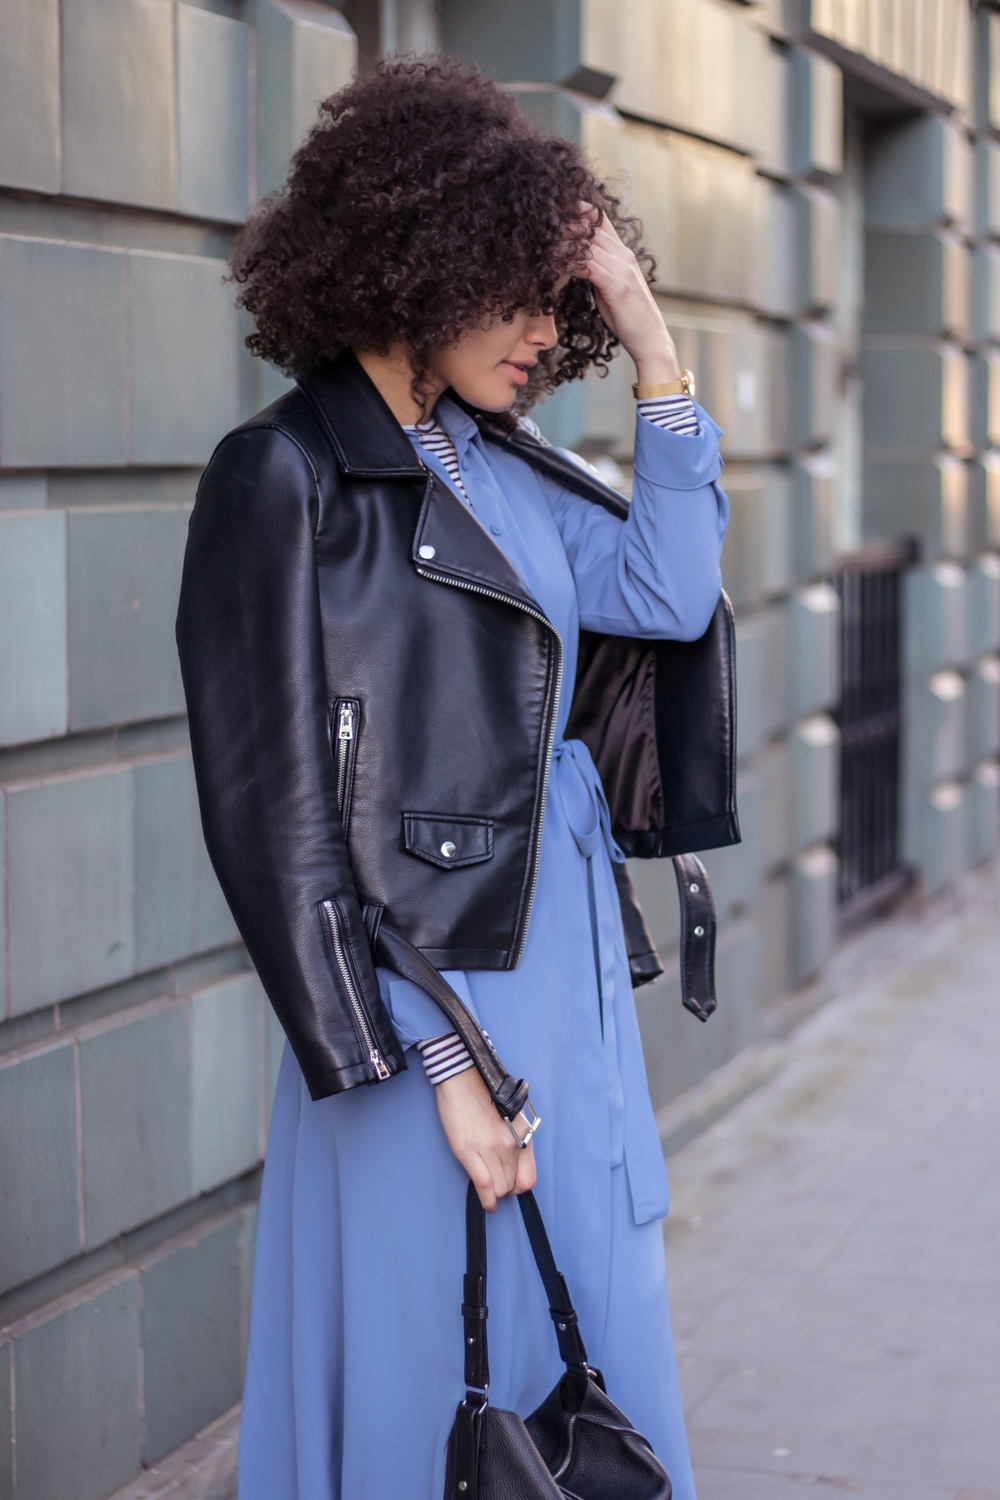 Faux leather biker jacket and dress outfit